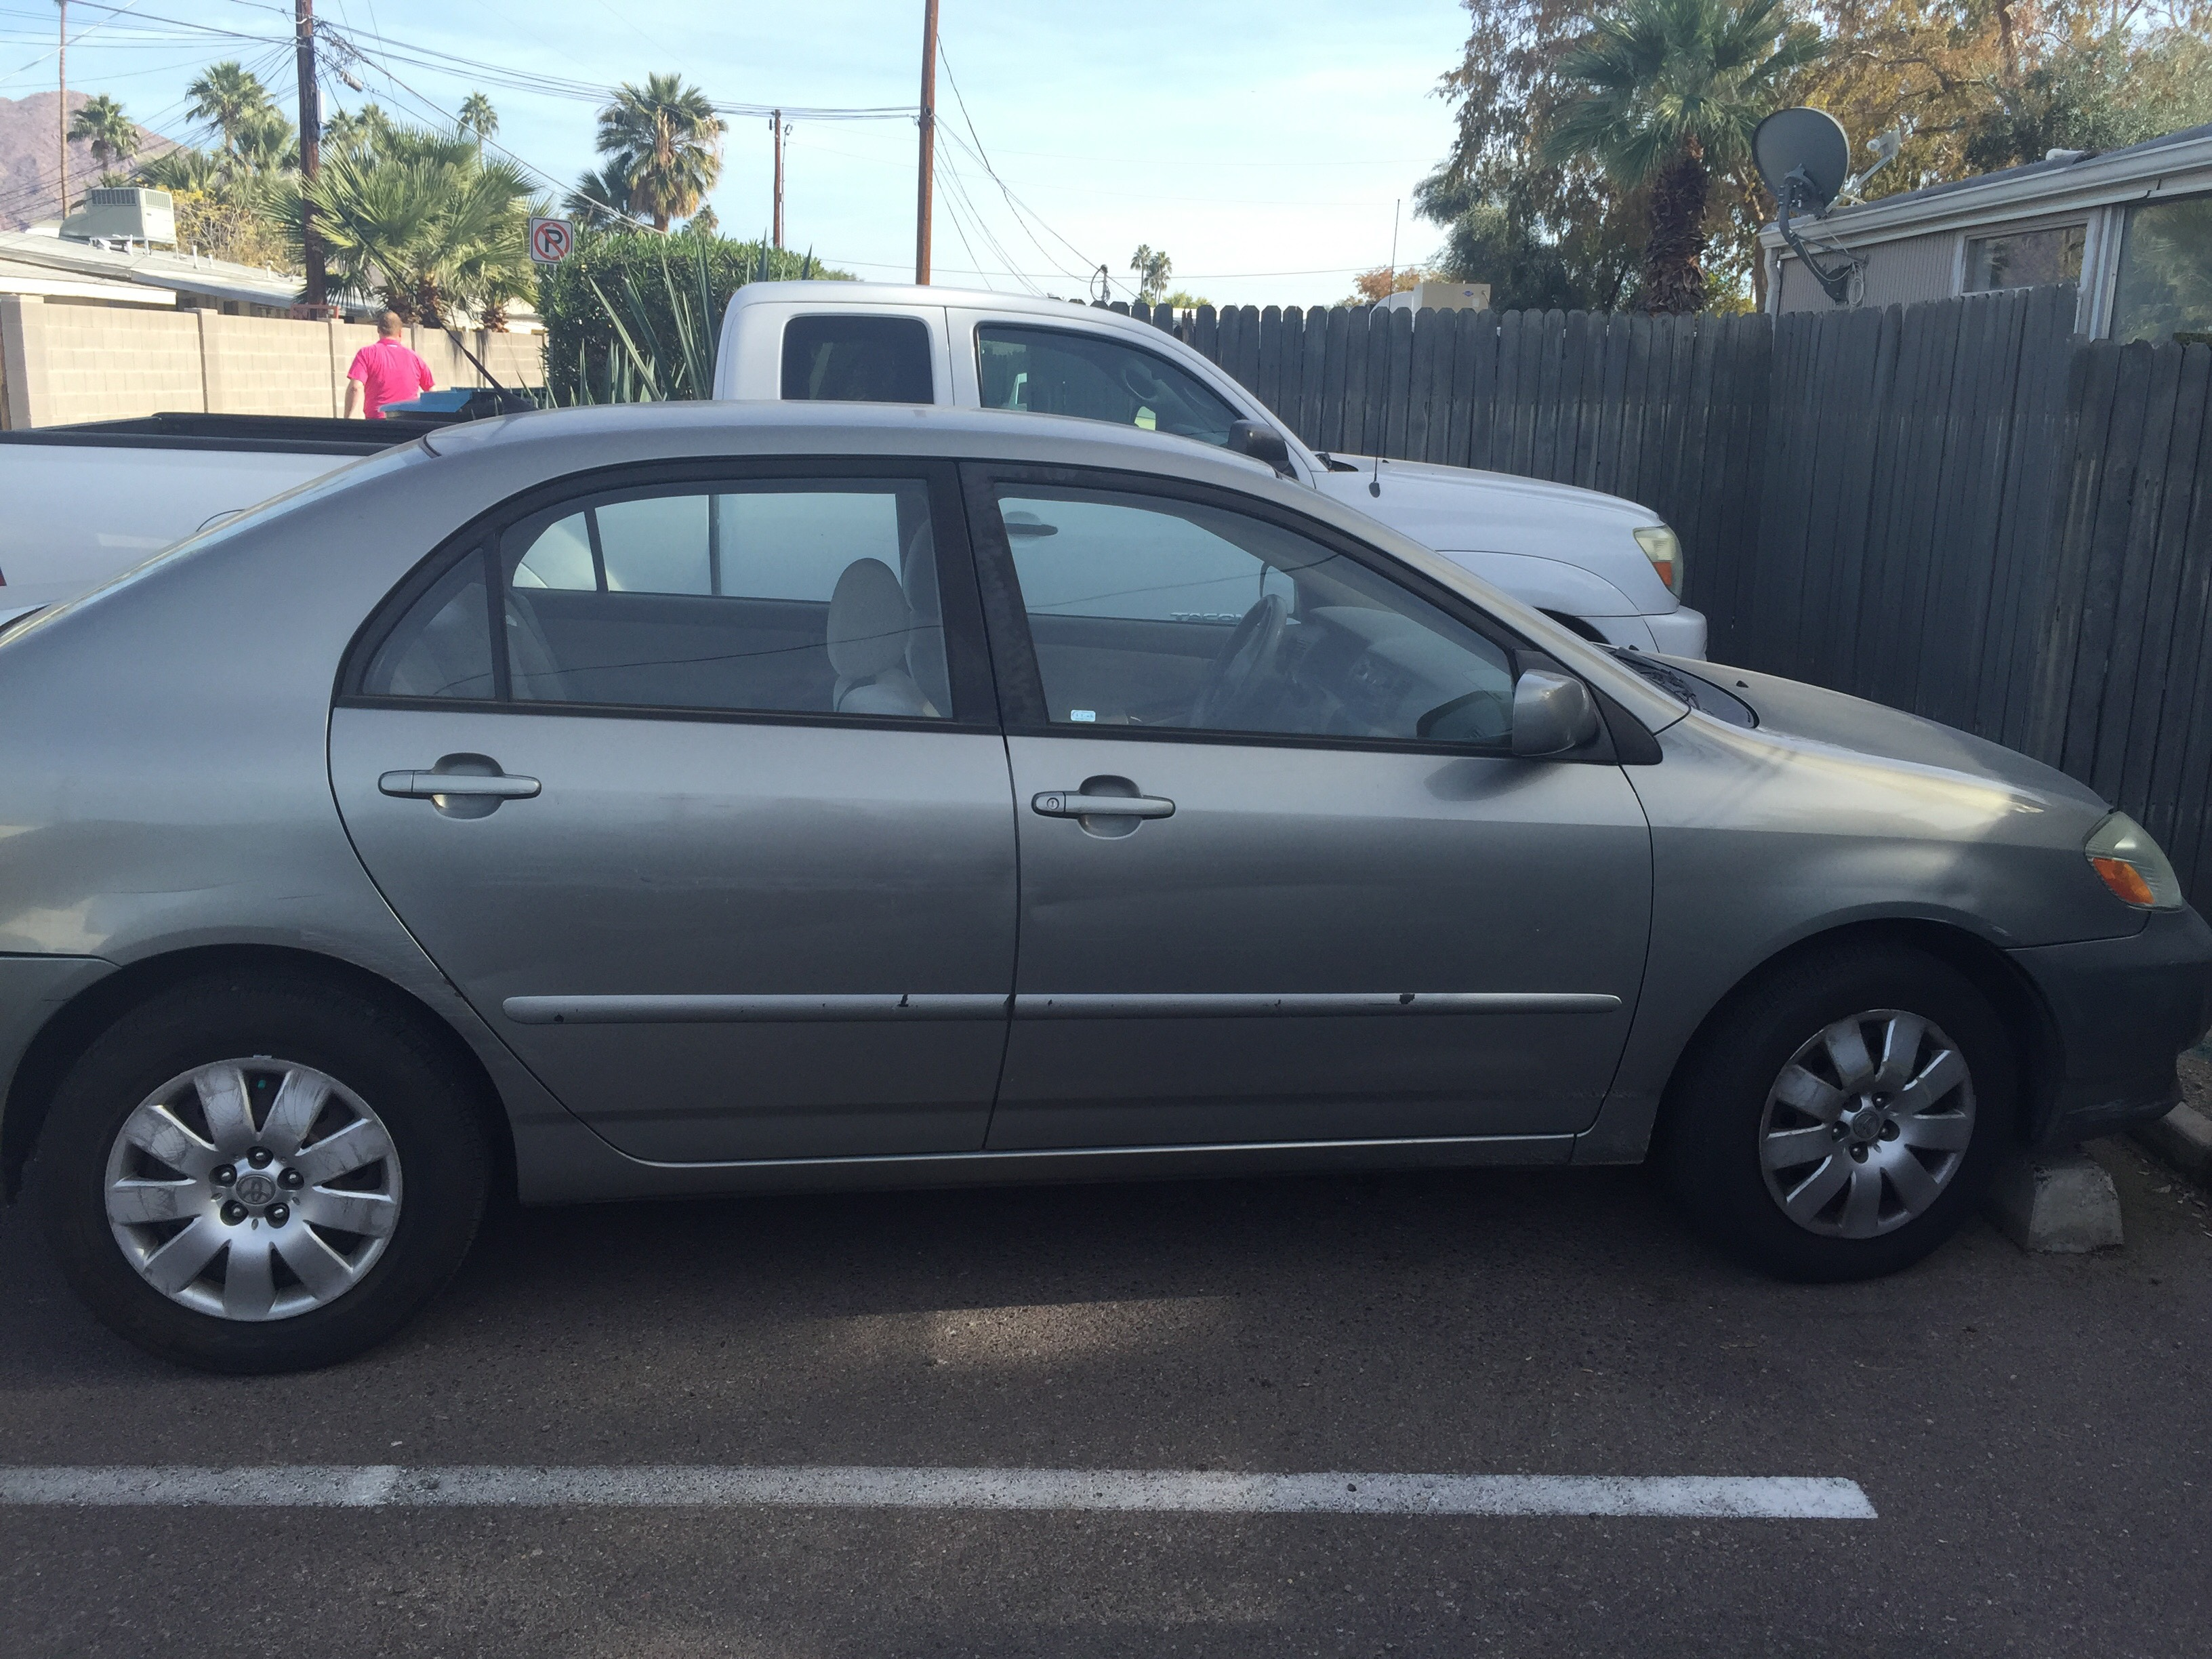 Cash For Cars Vancouver >> Cash for Cars Vancouver, WA   Sell Your Junk Car   The Clunker Junker